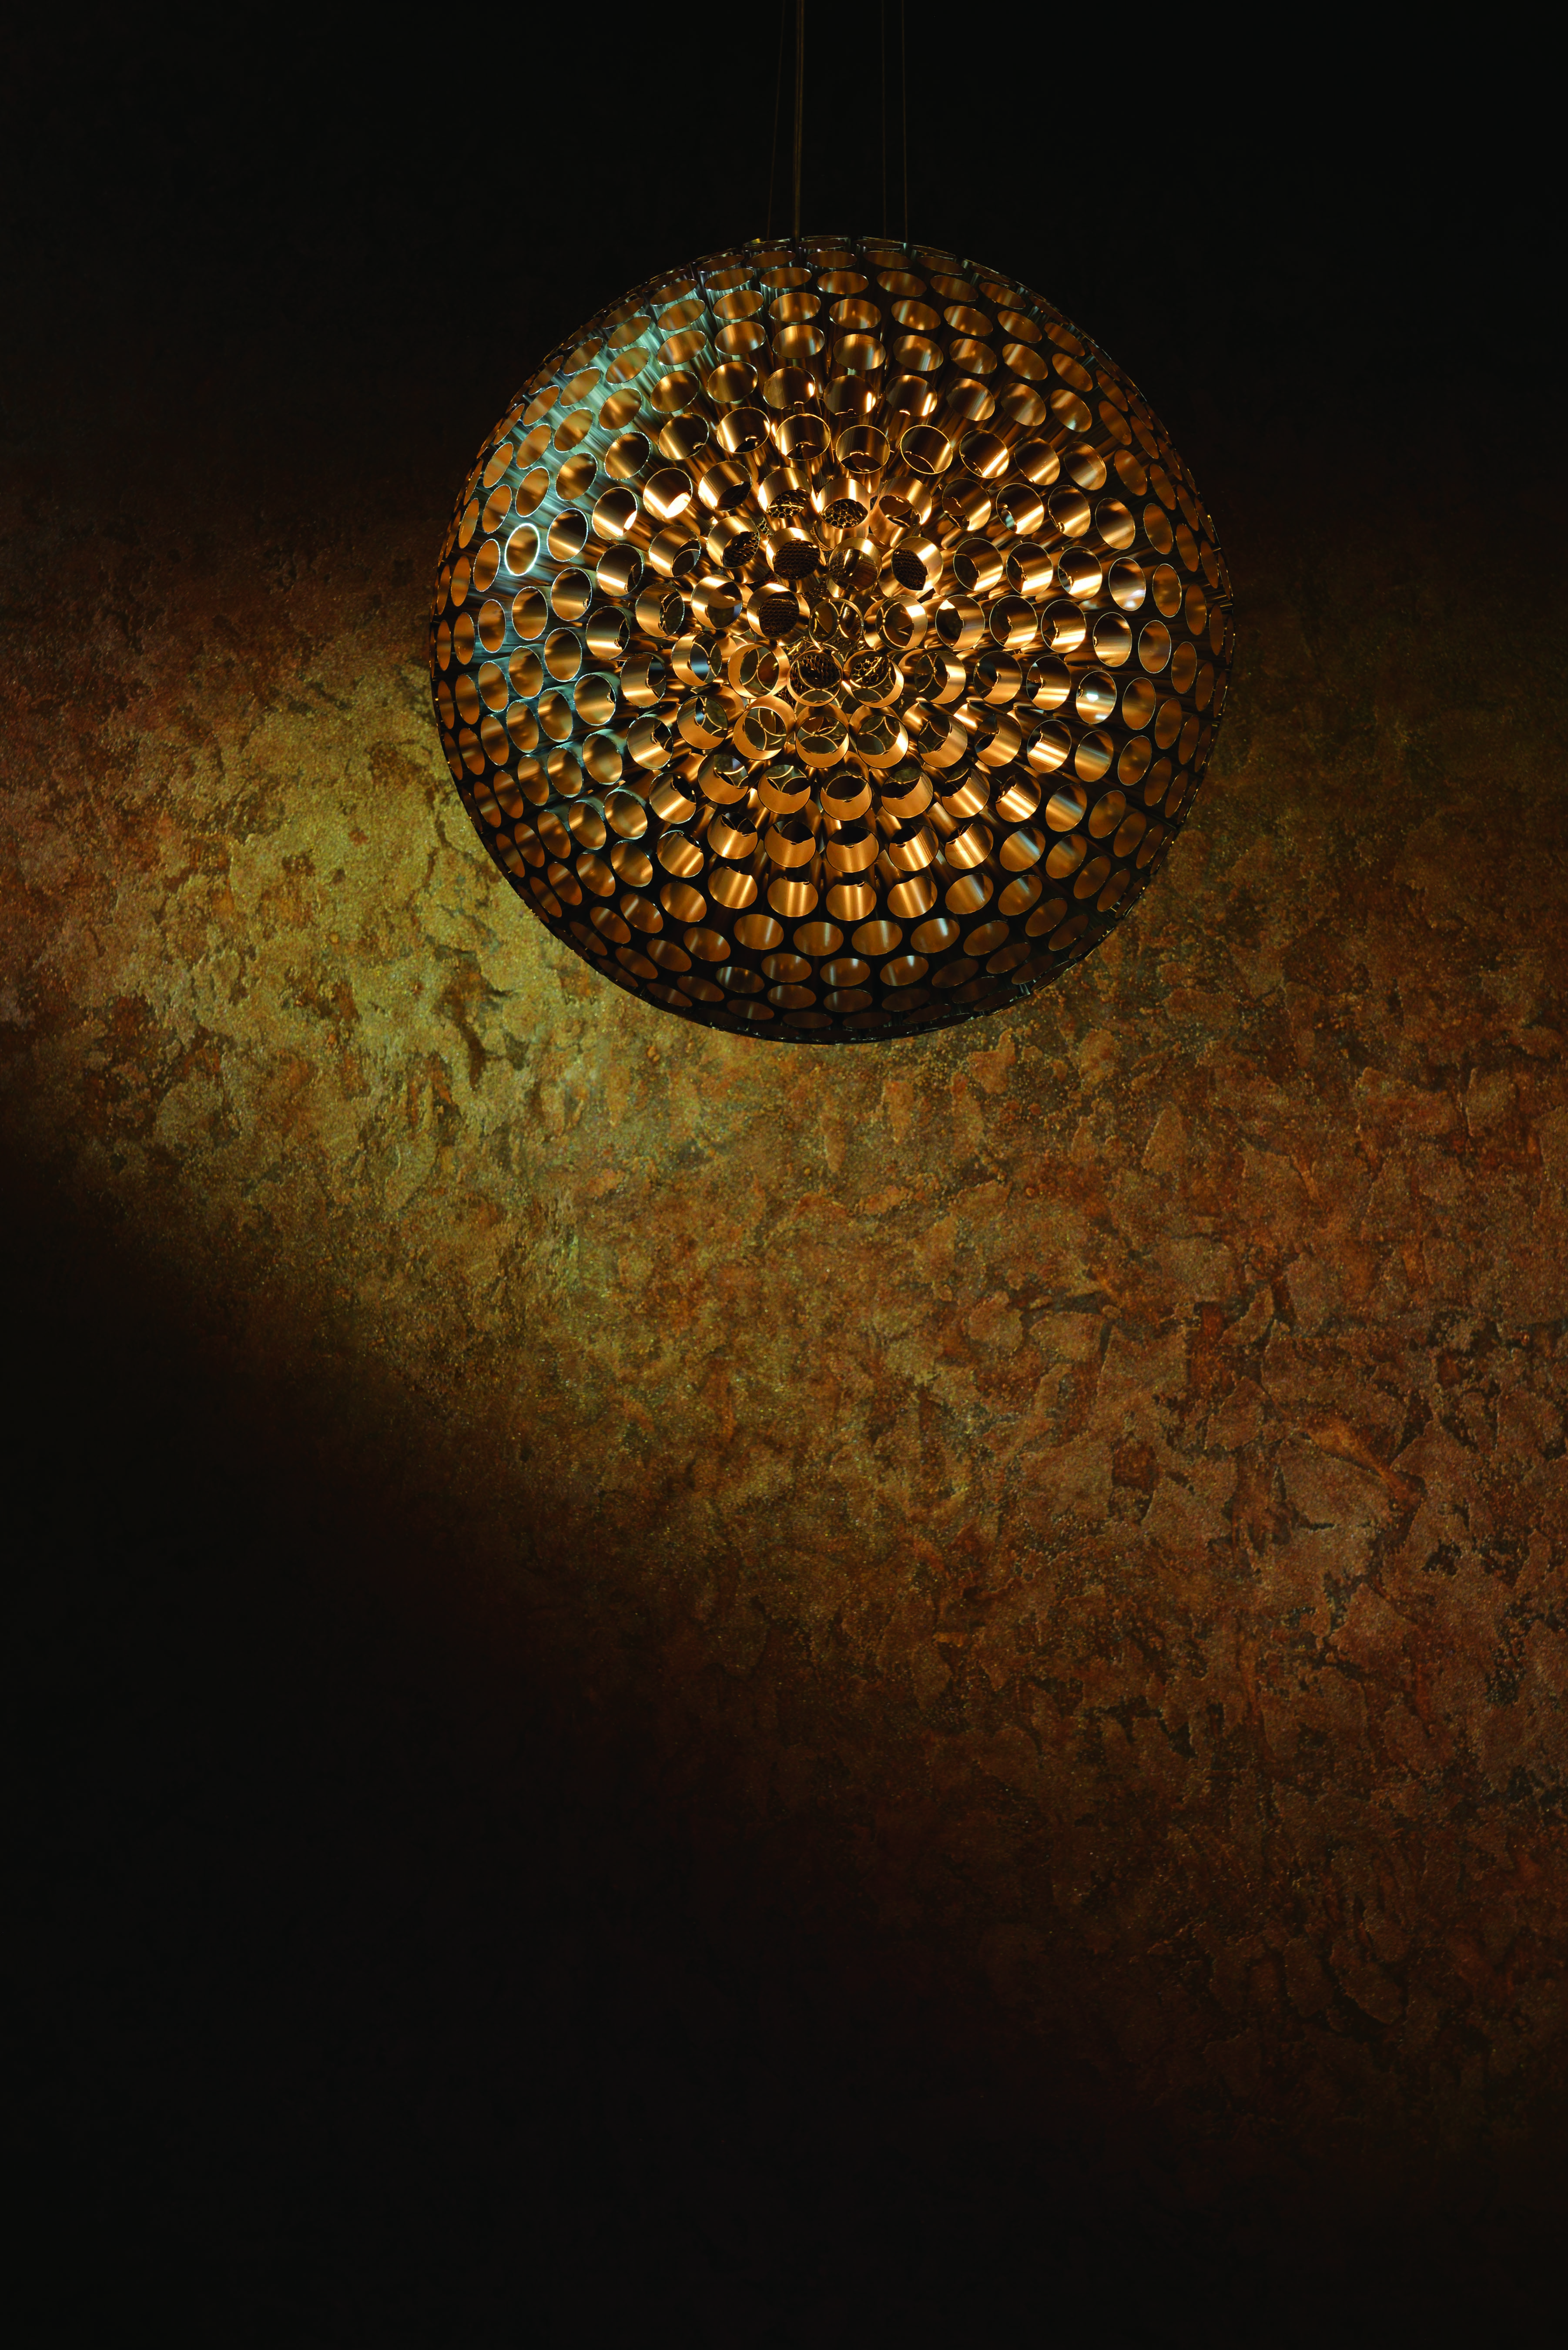 Other Worldly Textures By Asian Paints Royale Play Antico Rosso C Asian Paints Textured Wall Hanging Lamp